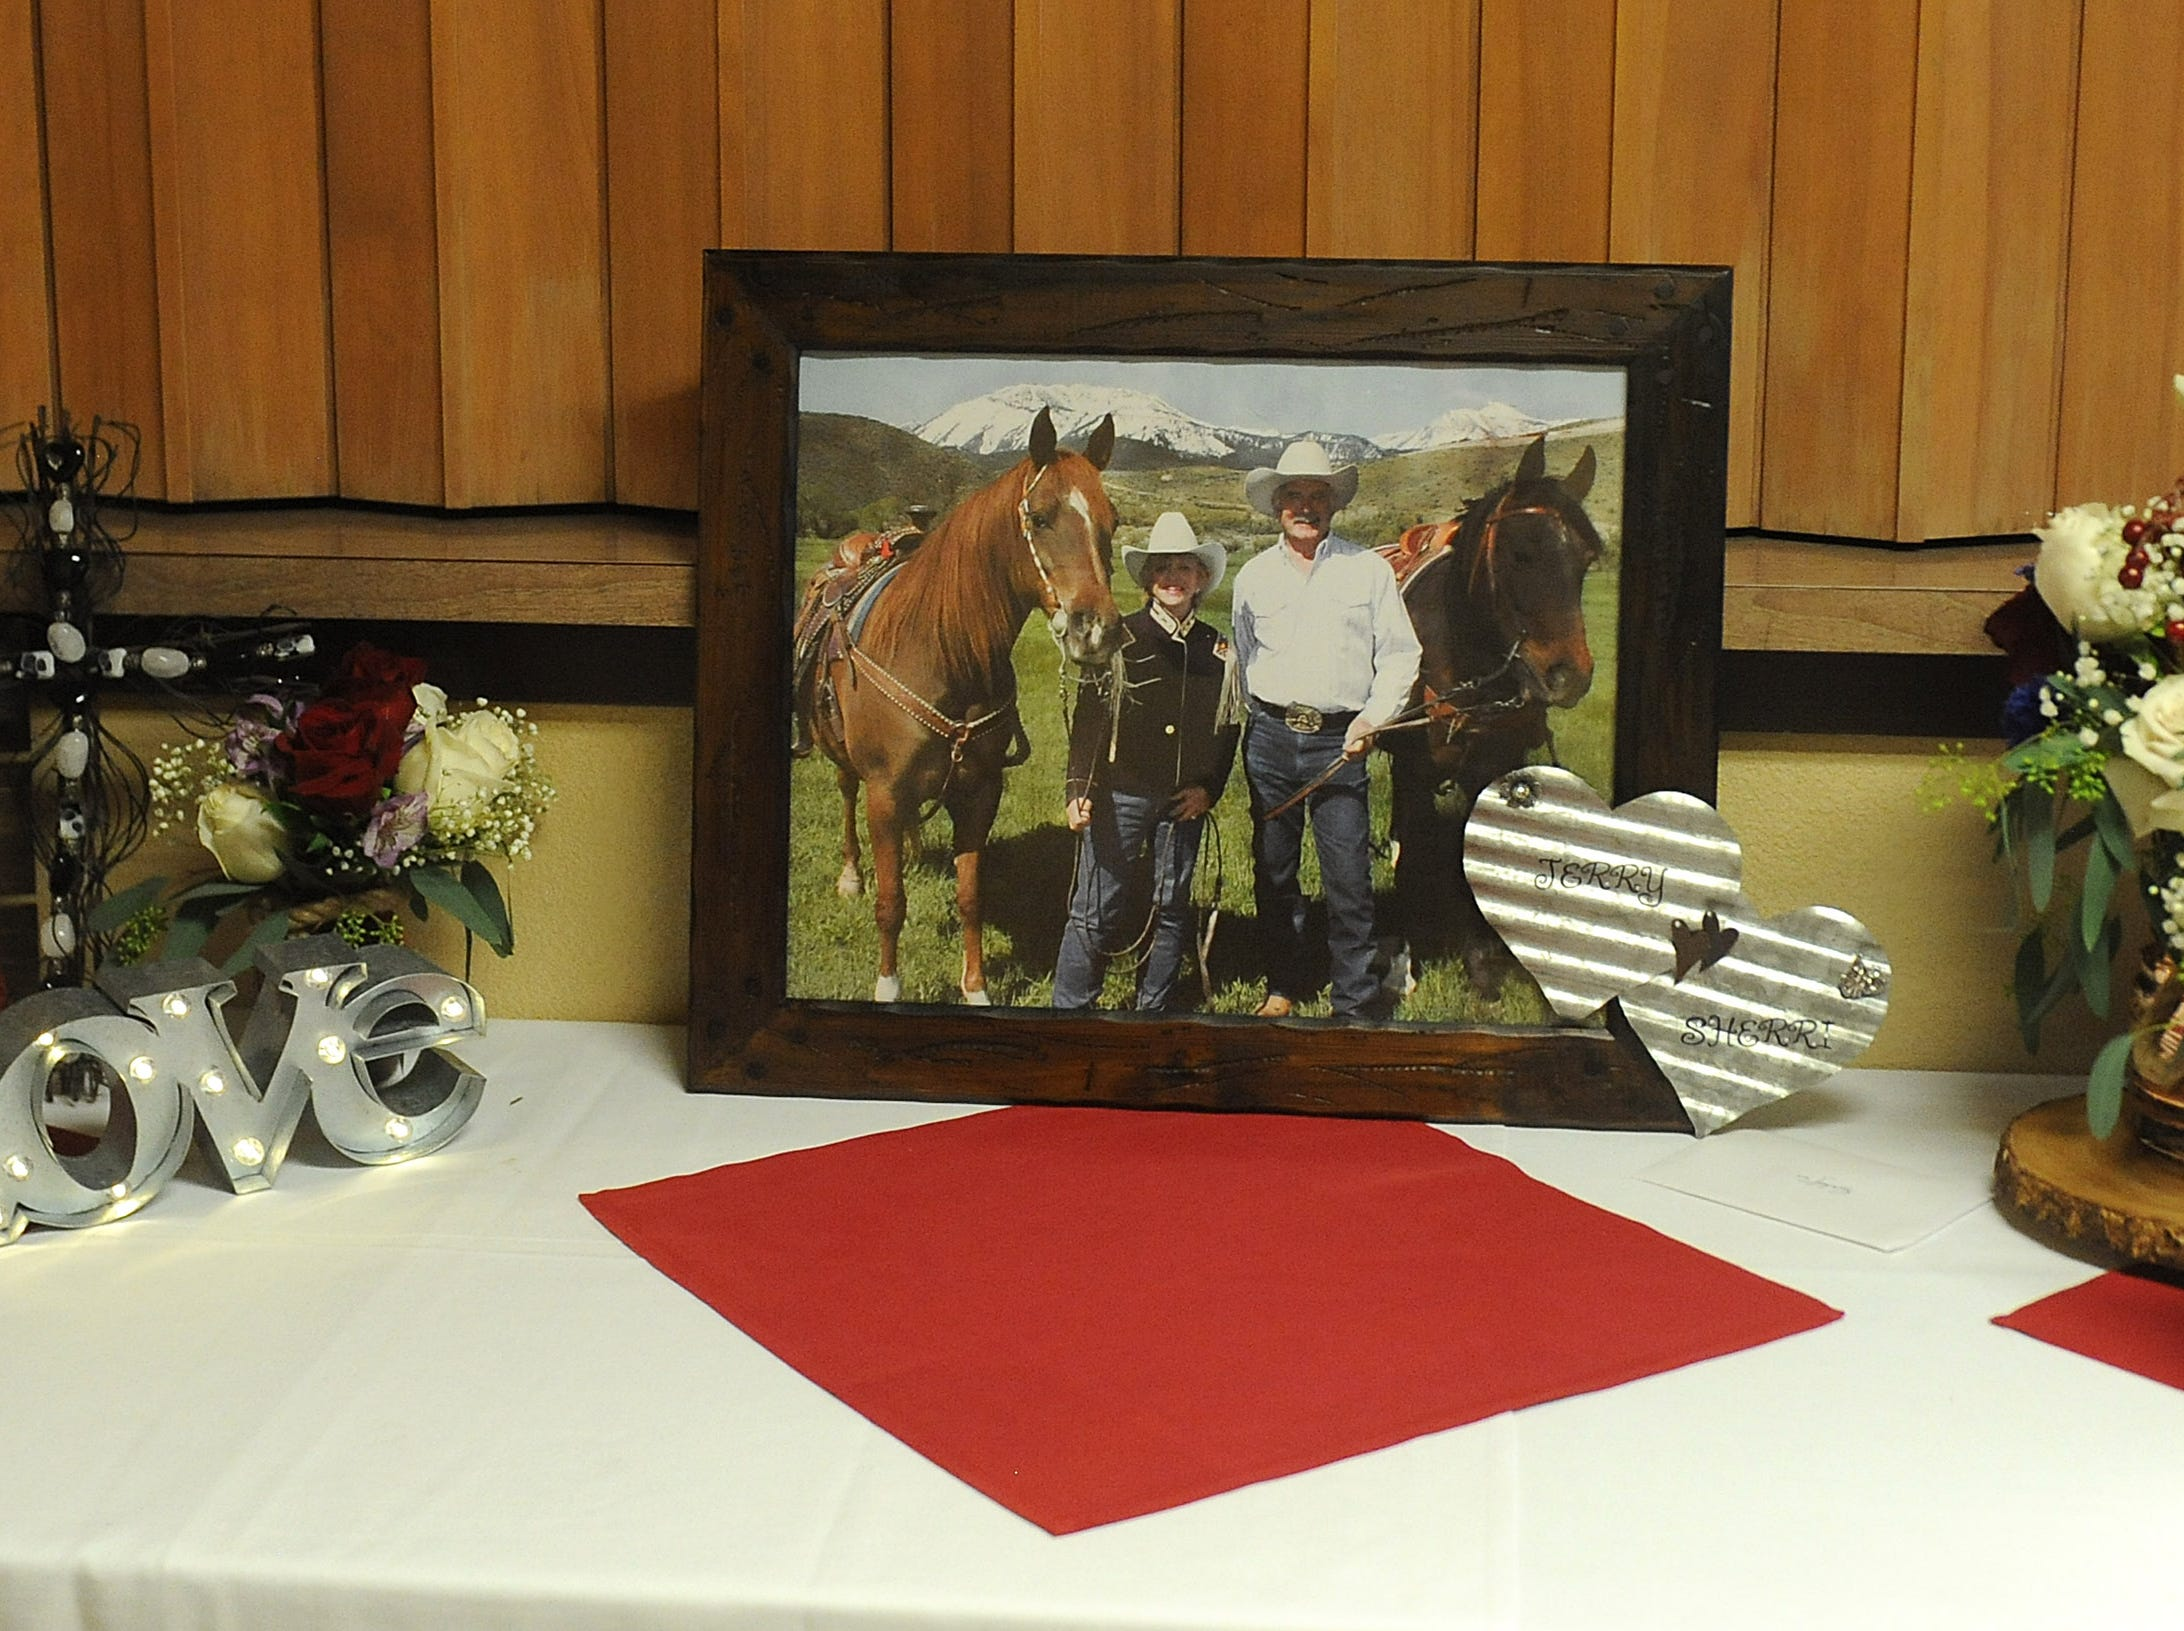 A collection of photos is seen as friends and family gather to pay their respects during a memorial service for Jerry and Sherri David at the Reno Elks Lodge on Feb. 1, 2019.